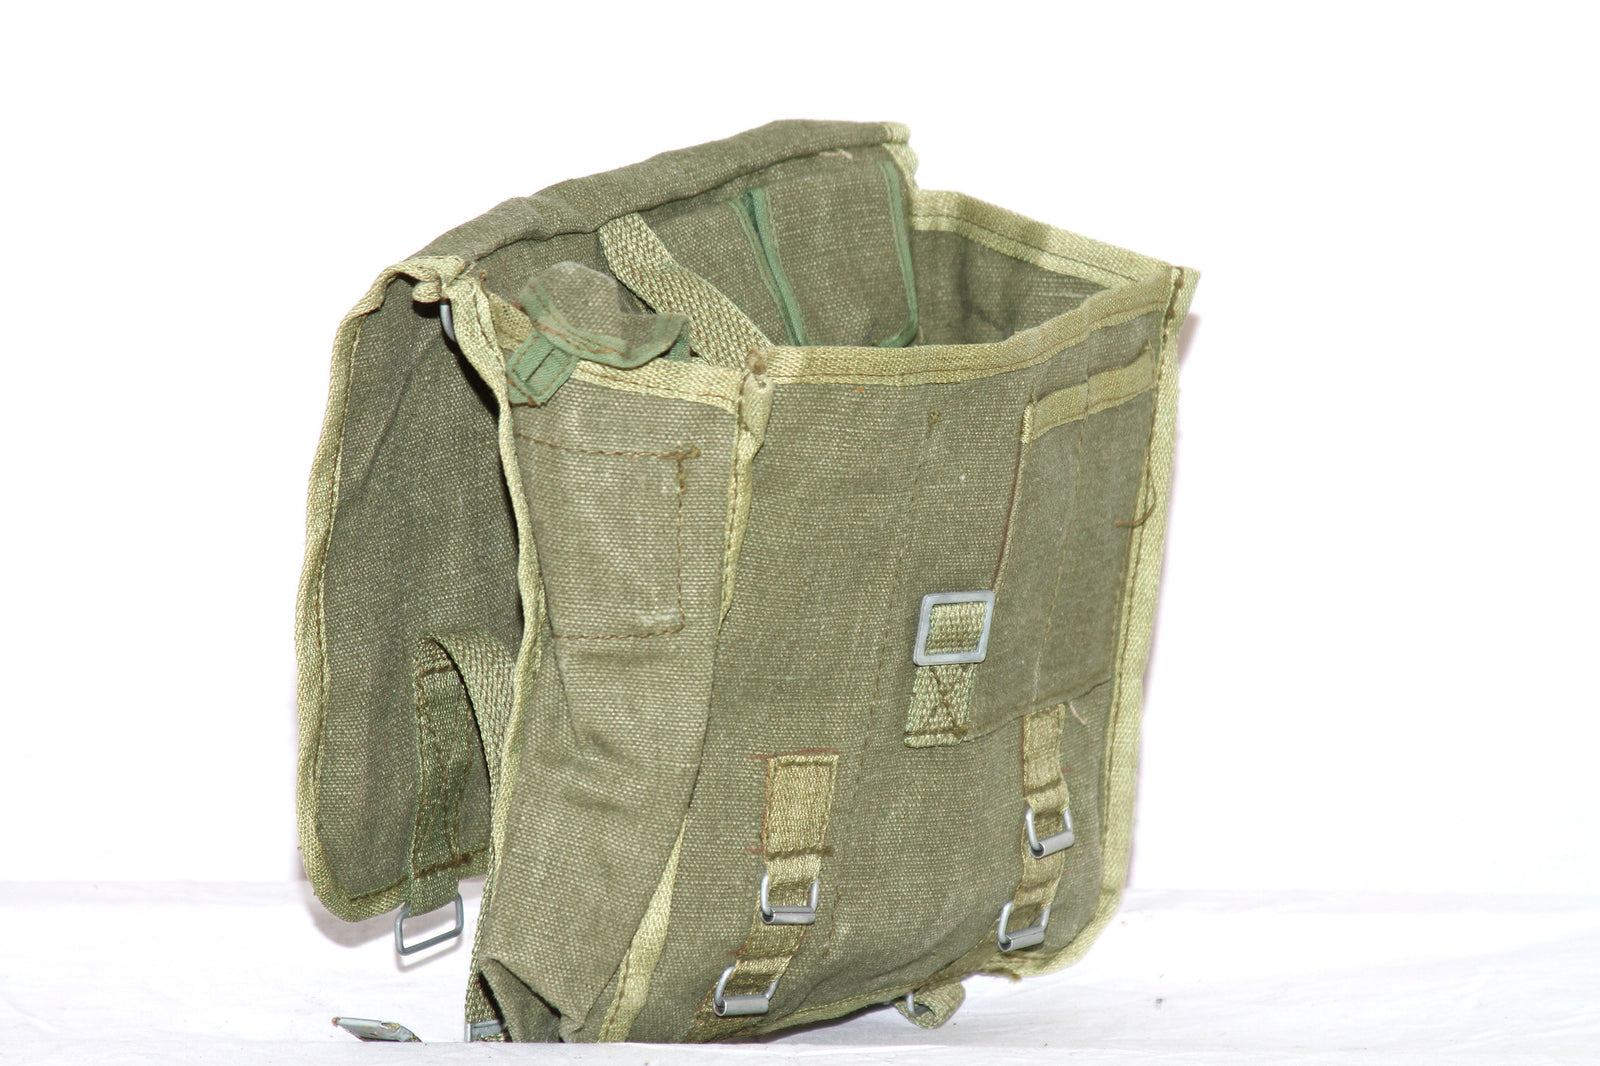 Russian army surplus canvas shoulder / gas mask bag - UNISSUED